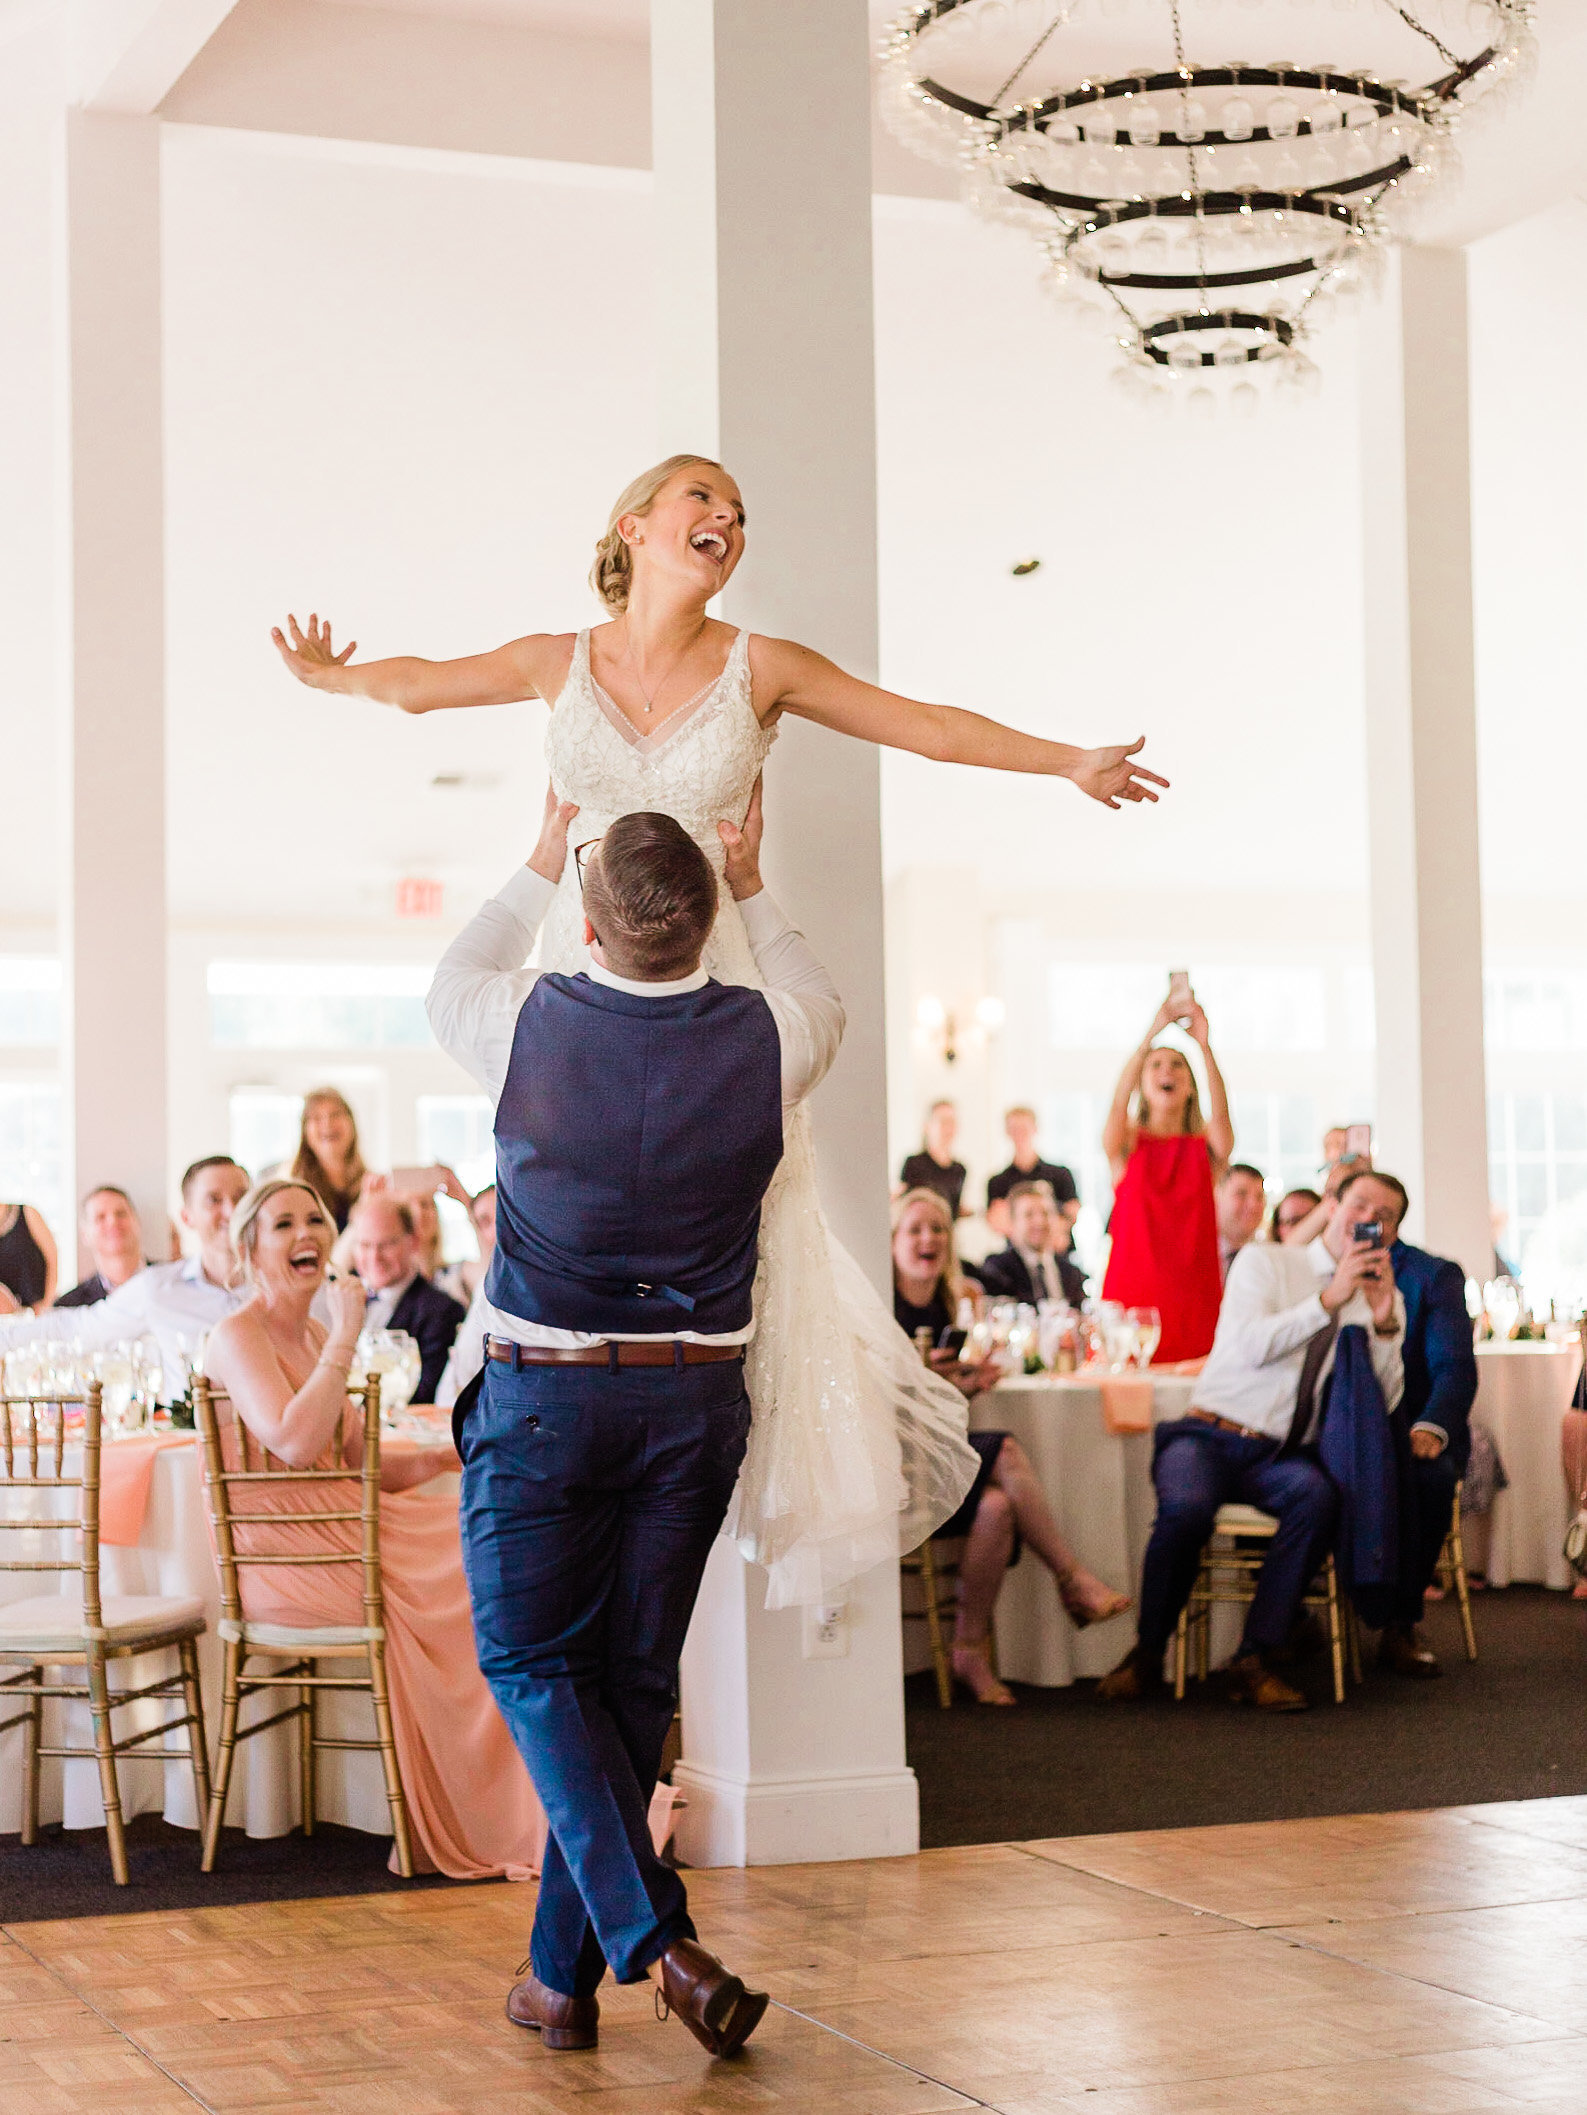 Groom lifts bride into the air during their first dance